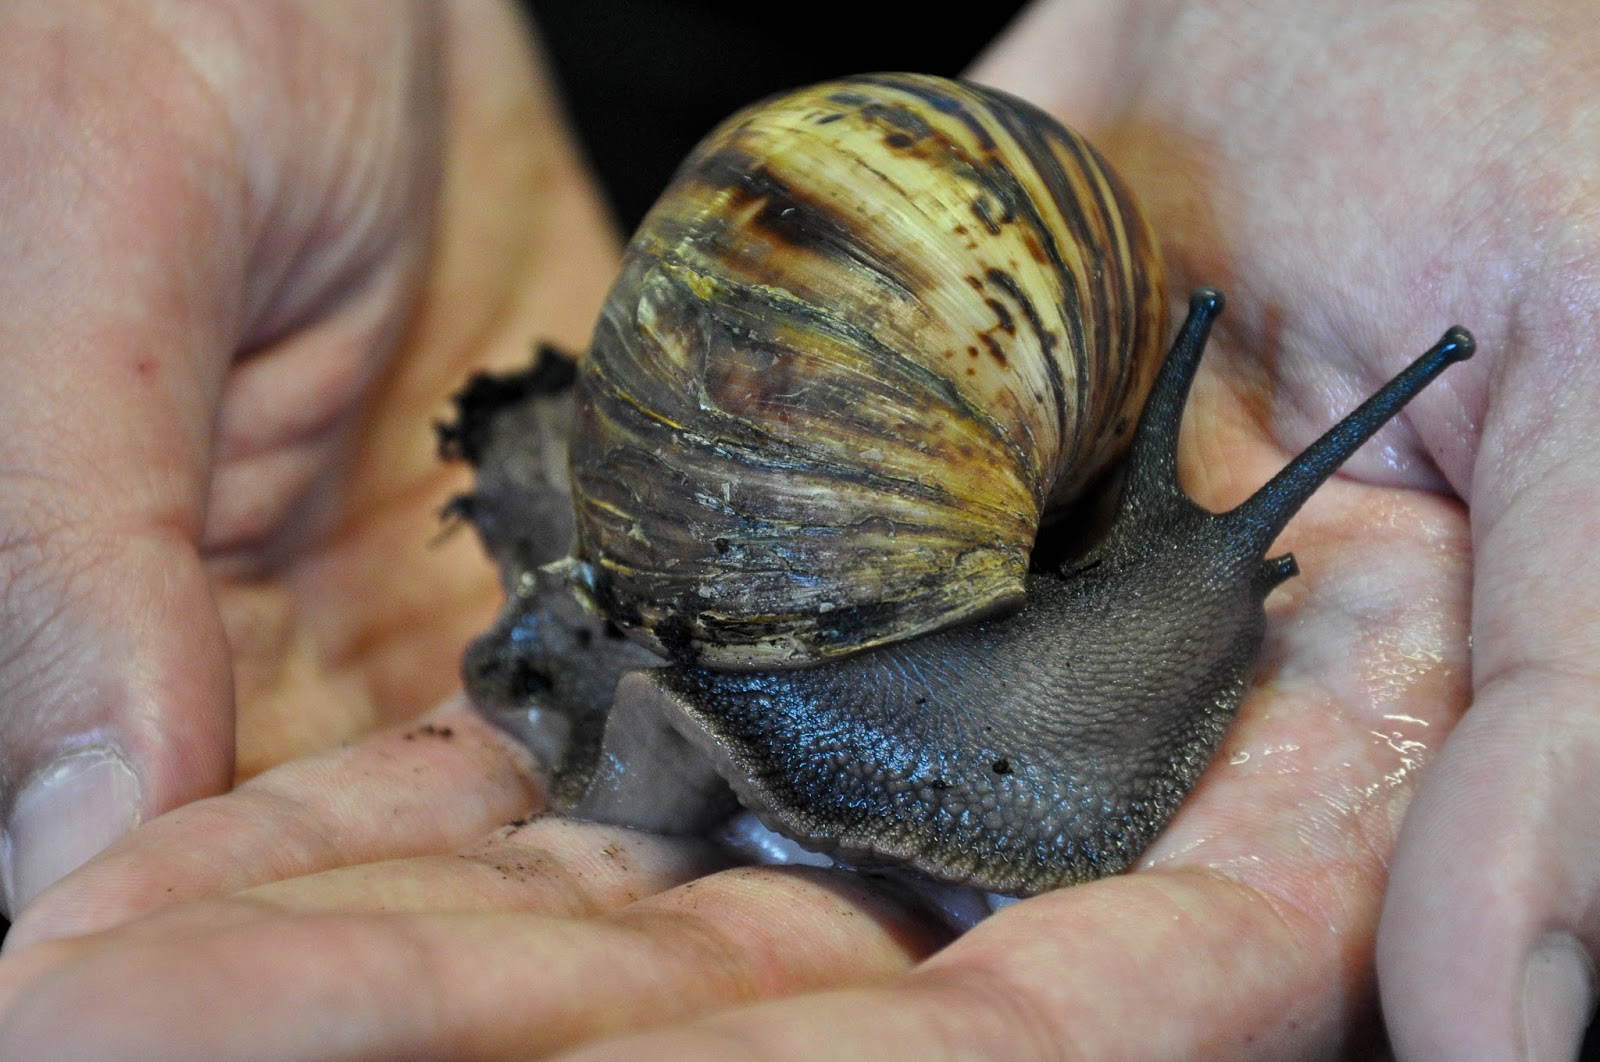 An African snail, The Butterfly World Project, St. Albans, Herts, UK